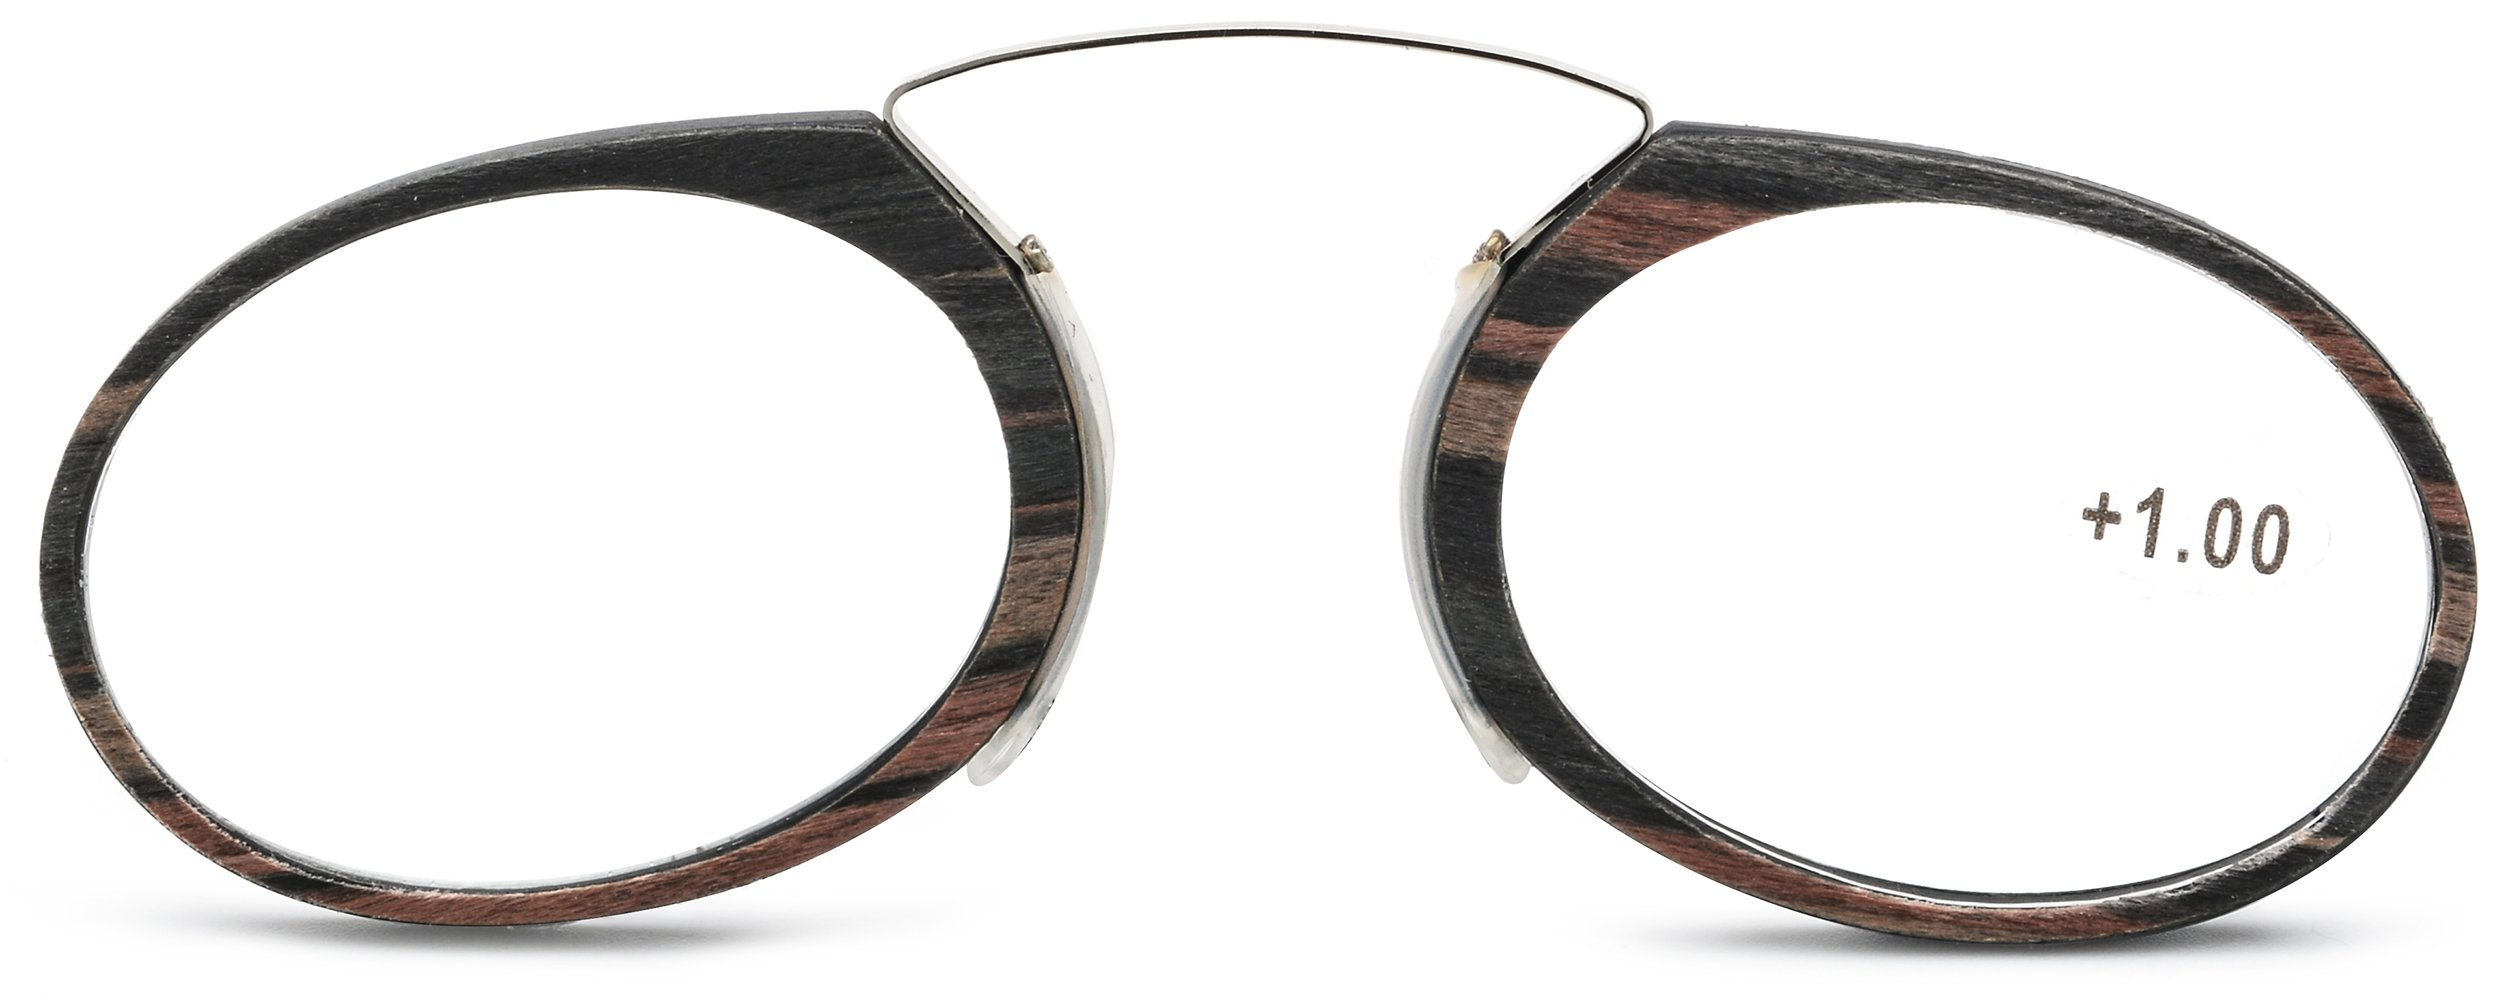 d791ee25d3a1 Pince Nez Style Clamp Nose Resting Pinching Reading Glasses ith No Temple  Arms Readers for Men and Women FJB02 (Gray Brown